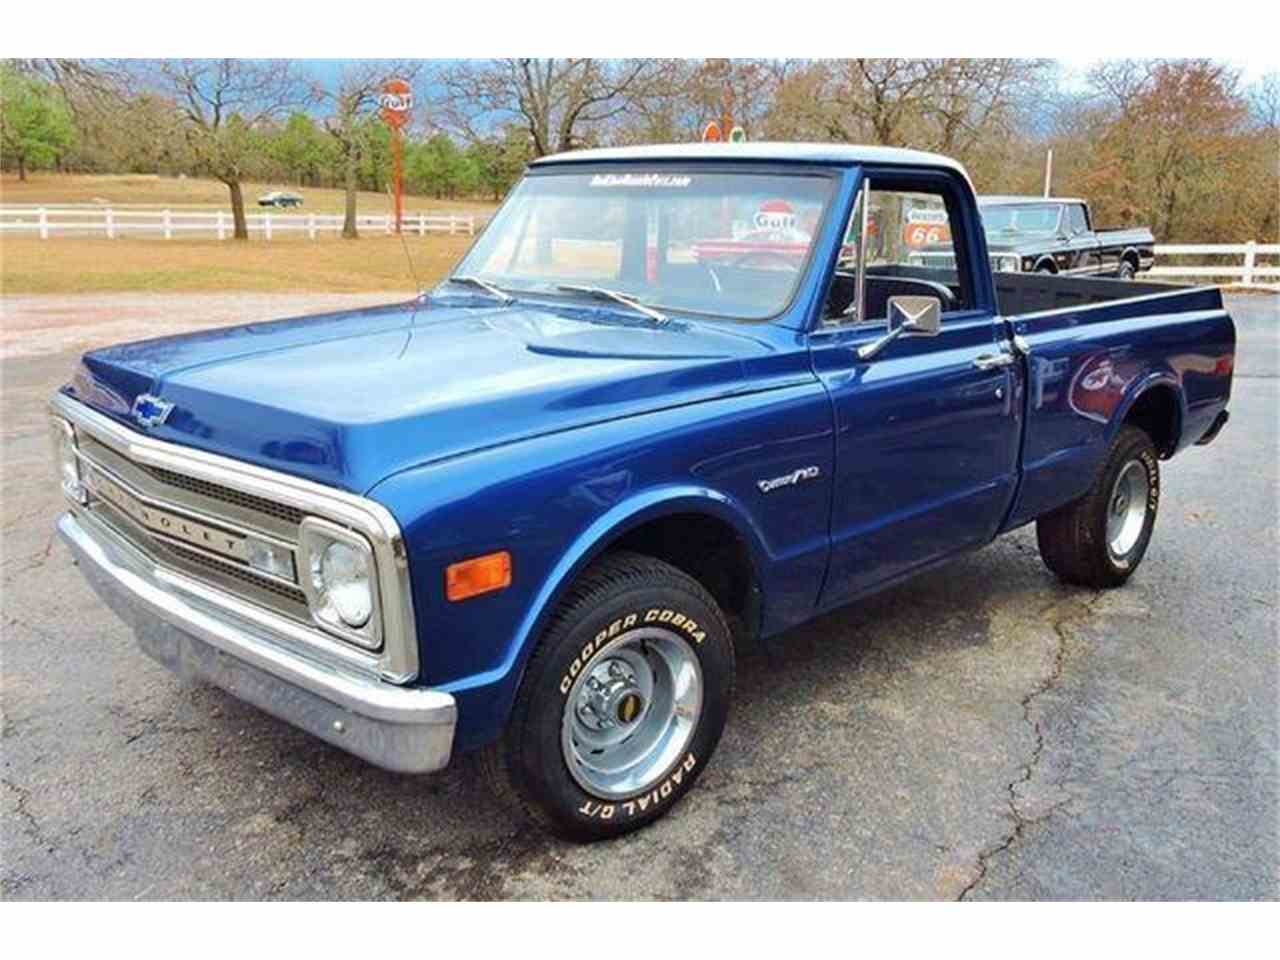 All Chevy 1969 chevrolet c10 for sale : 1969 Chevrolet C10 for Sale | ClassicCars.com | CC-1022303